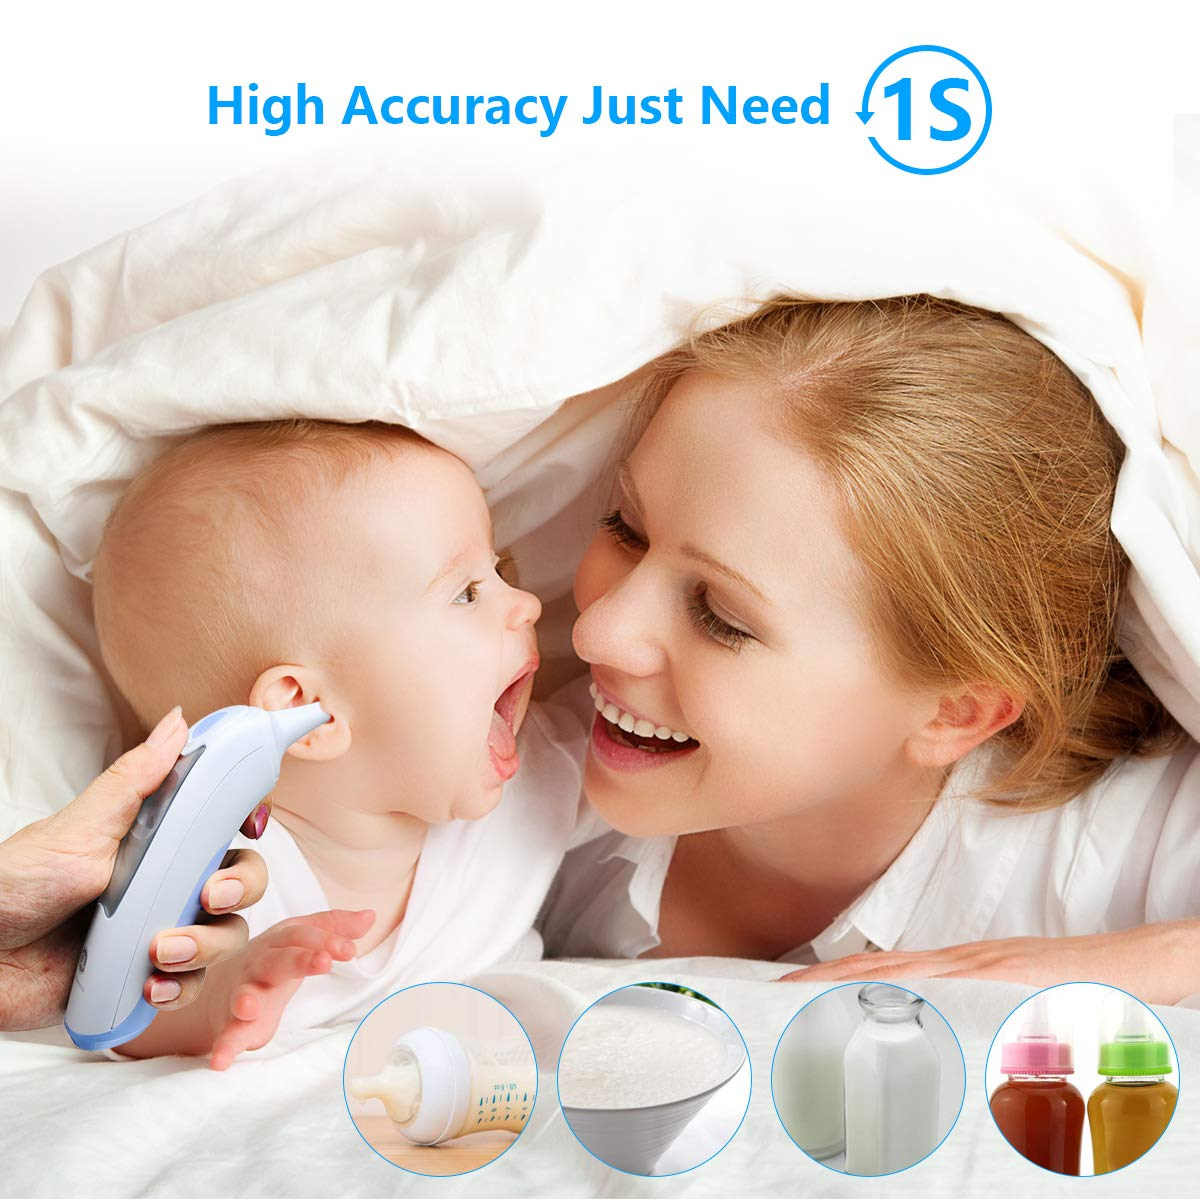 Baby Ear Thermometer for Fever Gland Medical Digital Ear Thermometer for Baby, Infants,Toddlers, and Adults FDA Approved by GL Gland Electronics (Image #4)